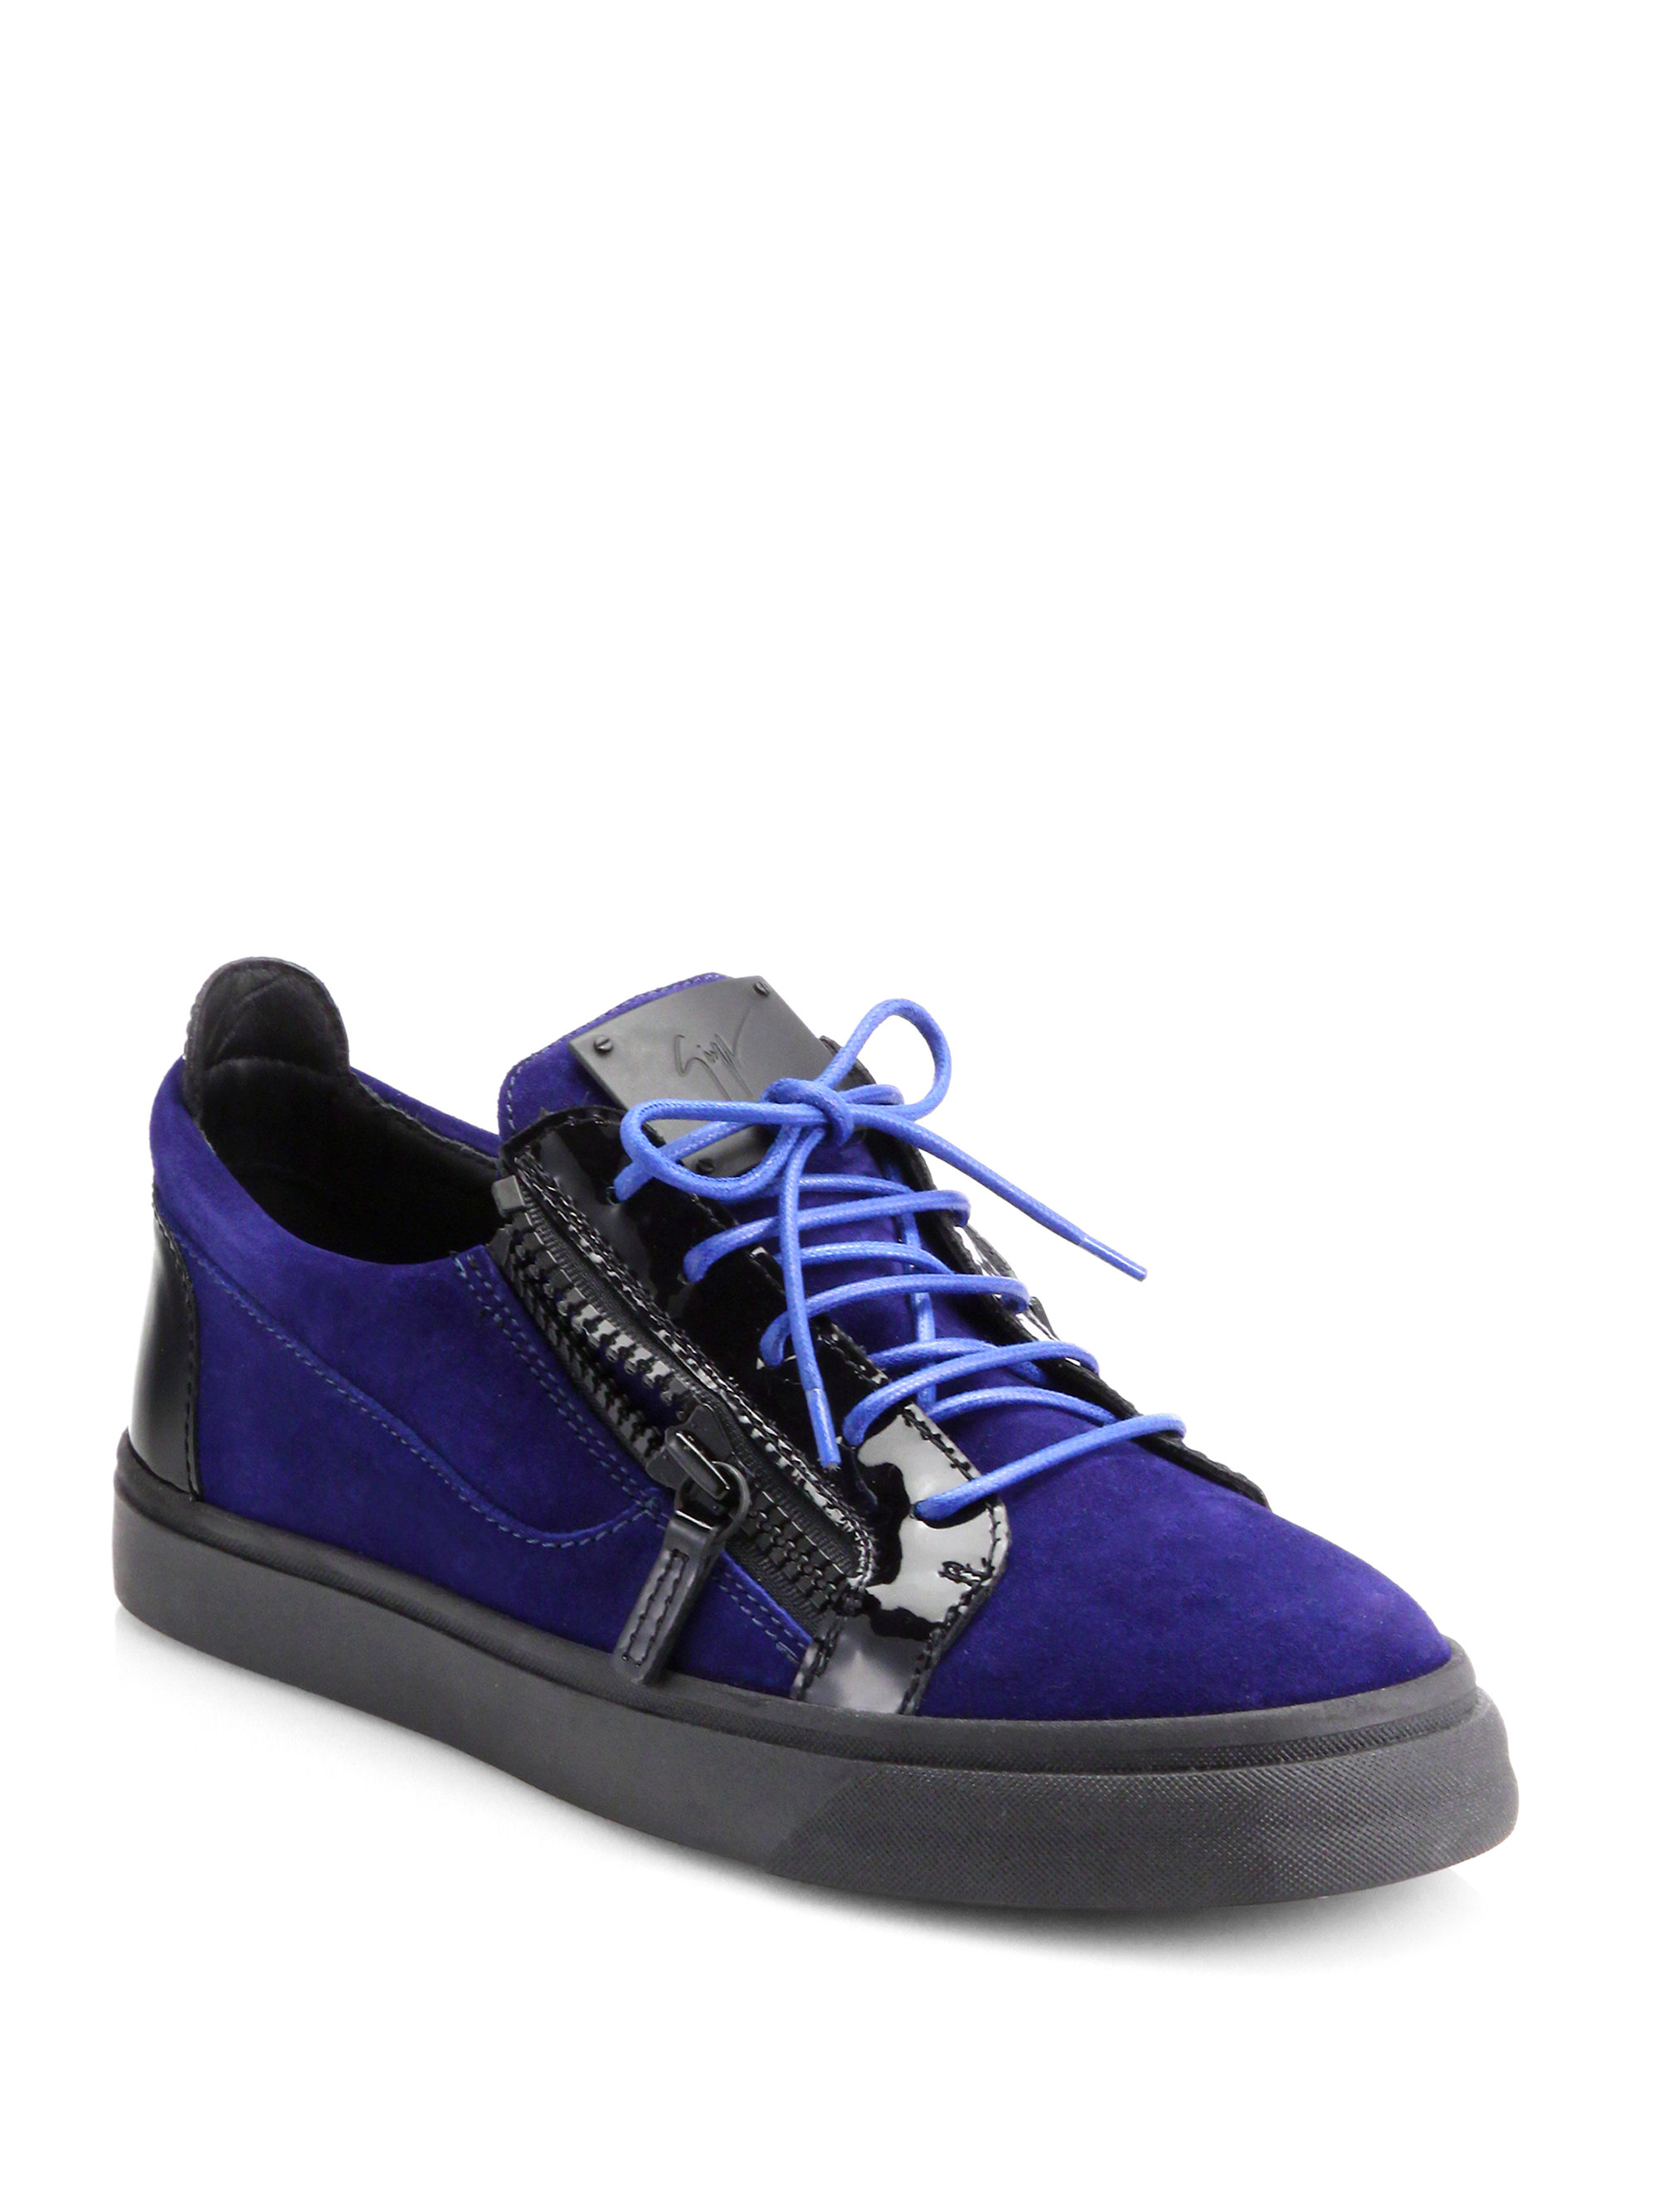 Coach Mens Blue Suede Shoes